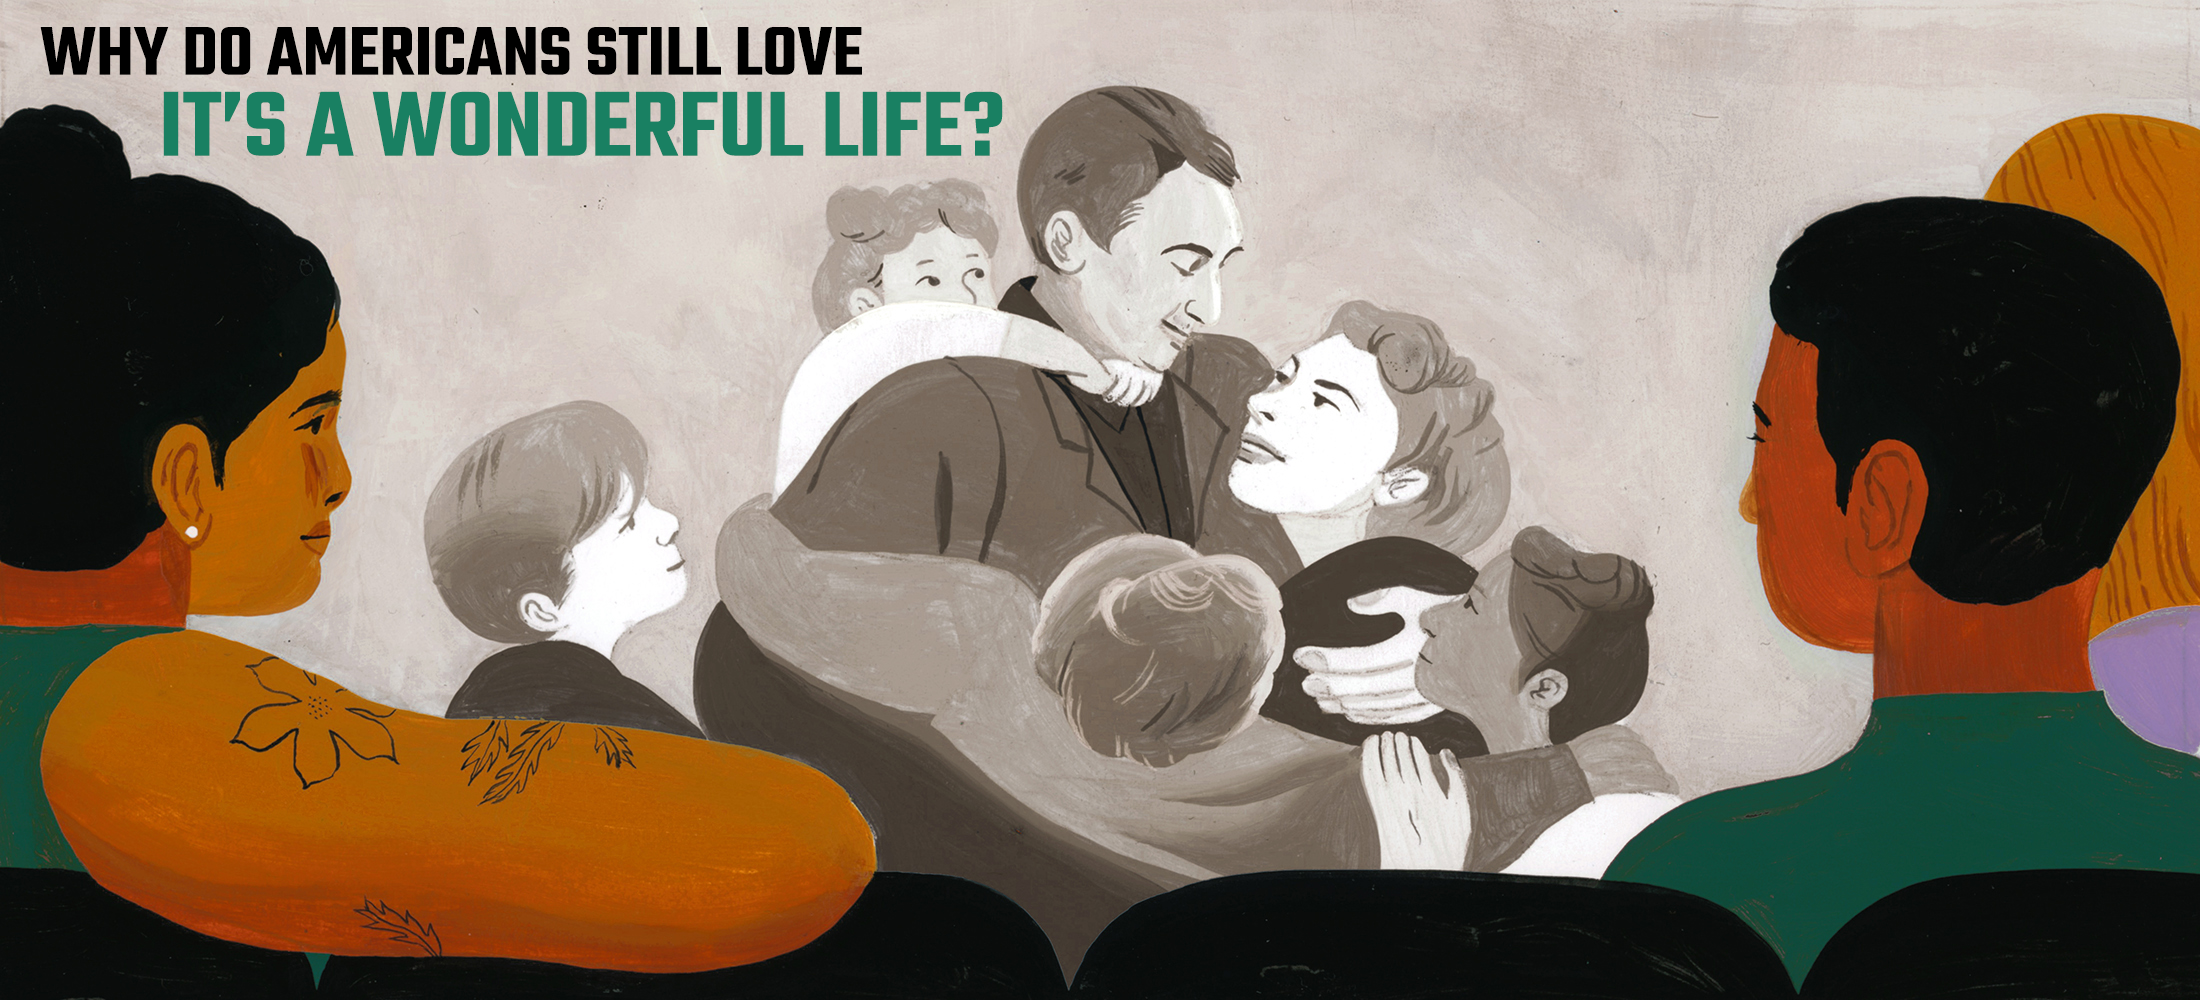 Why Do Americans Still Love It's a Wonderful Life?